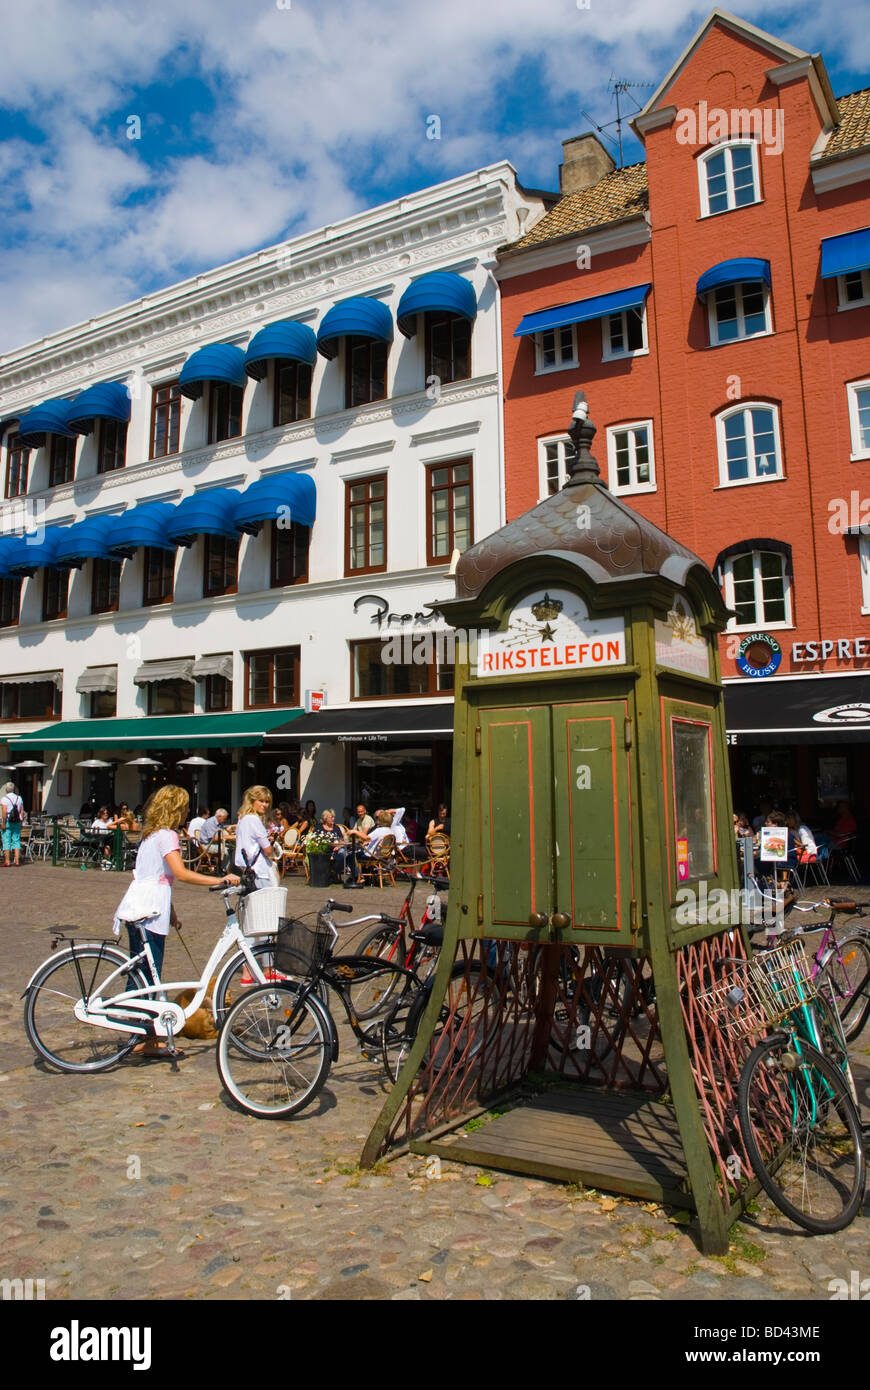 Rikstelefon telephone box at Lilla torg square in Gamla Staden the old town Malmö Skåne Sweden Europe - Stock Image